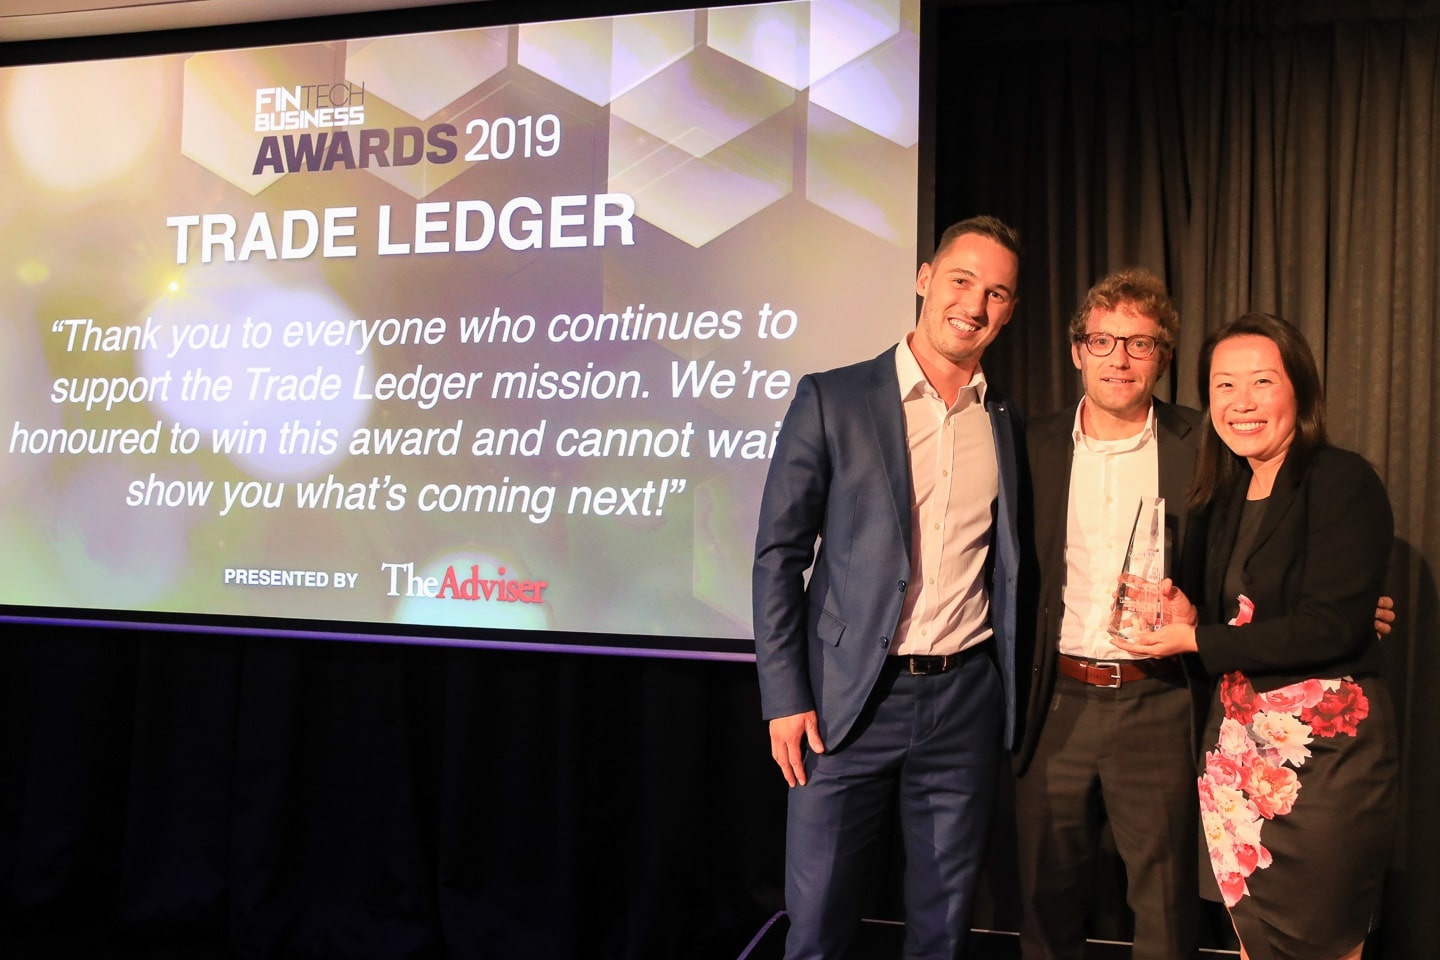 Austrlian Accounting Awards Highlights